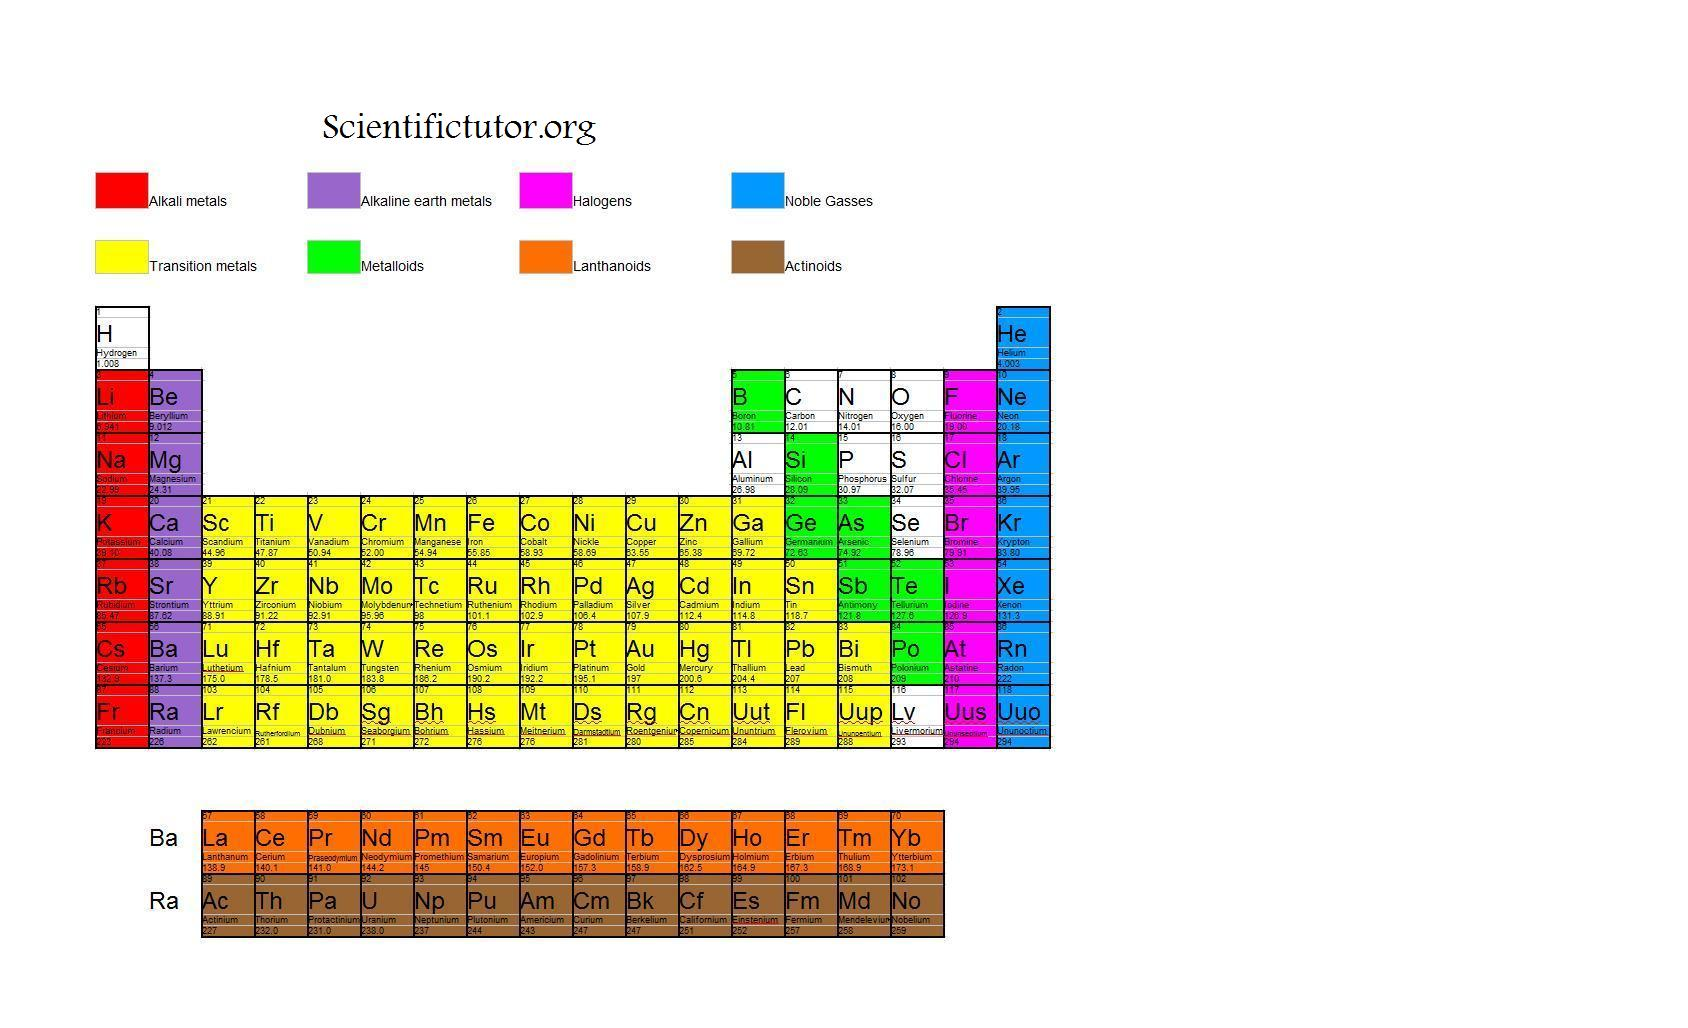 Chem further divisions of the periodic table scientific tutor this periodic table is very good at showing you where they are urtaz Image collections